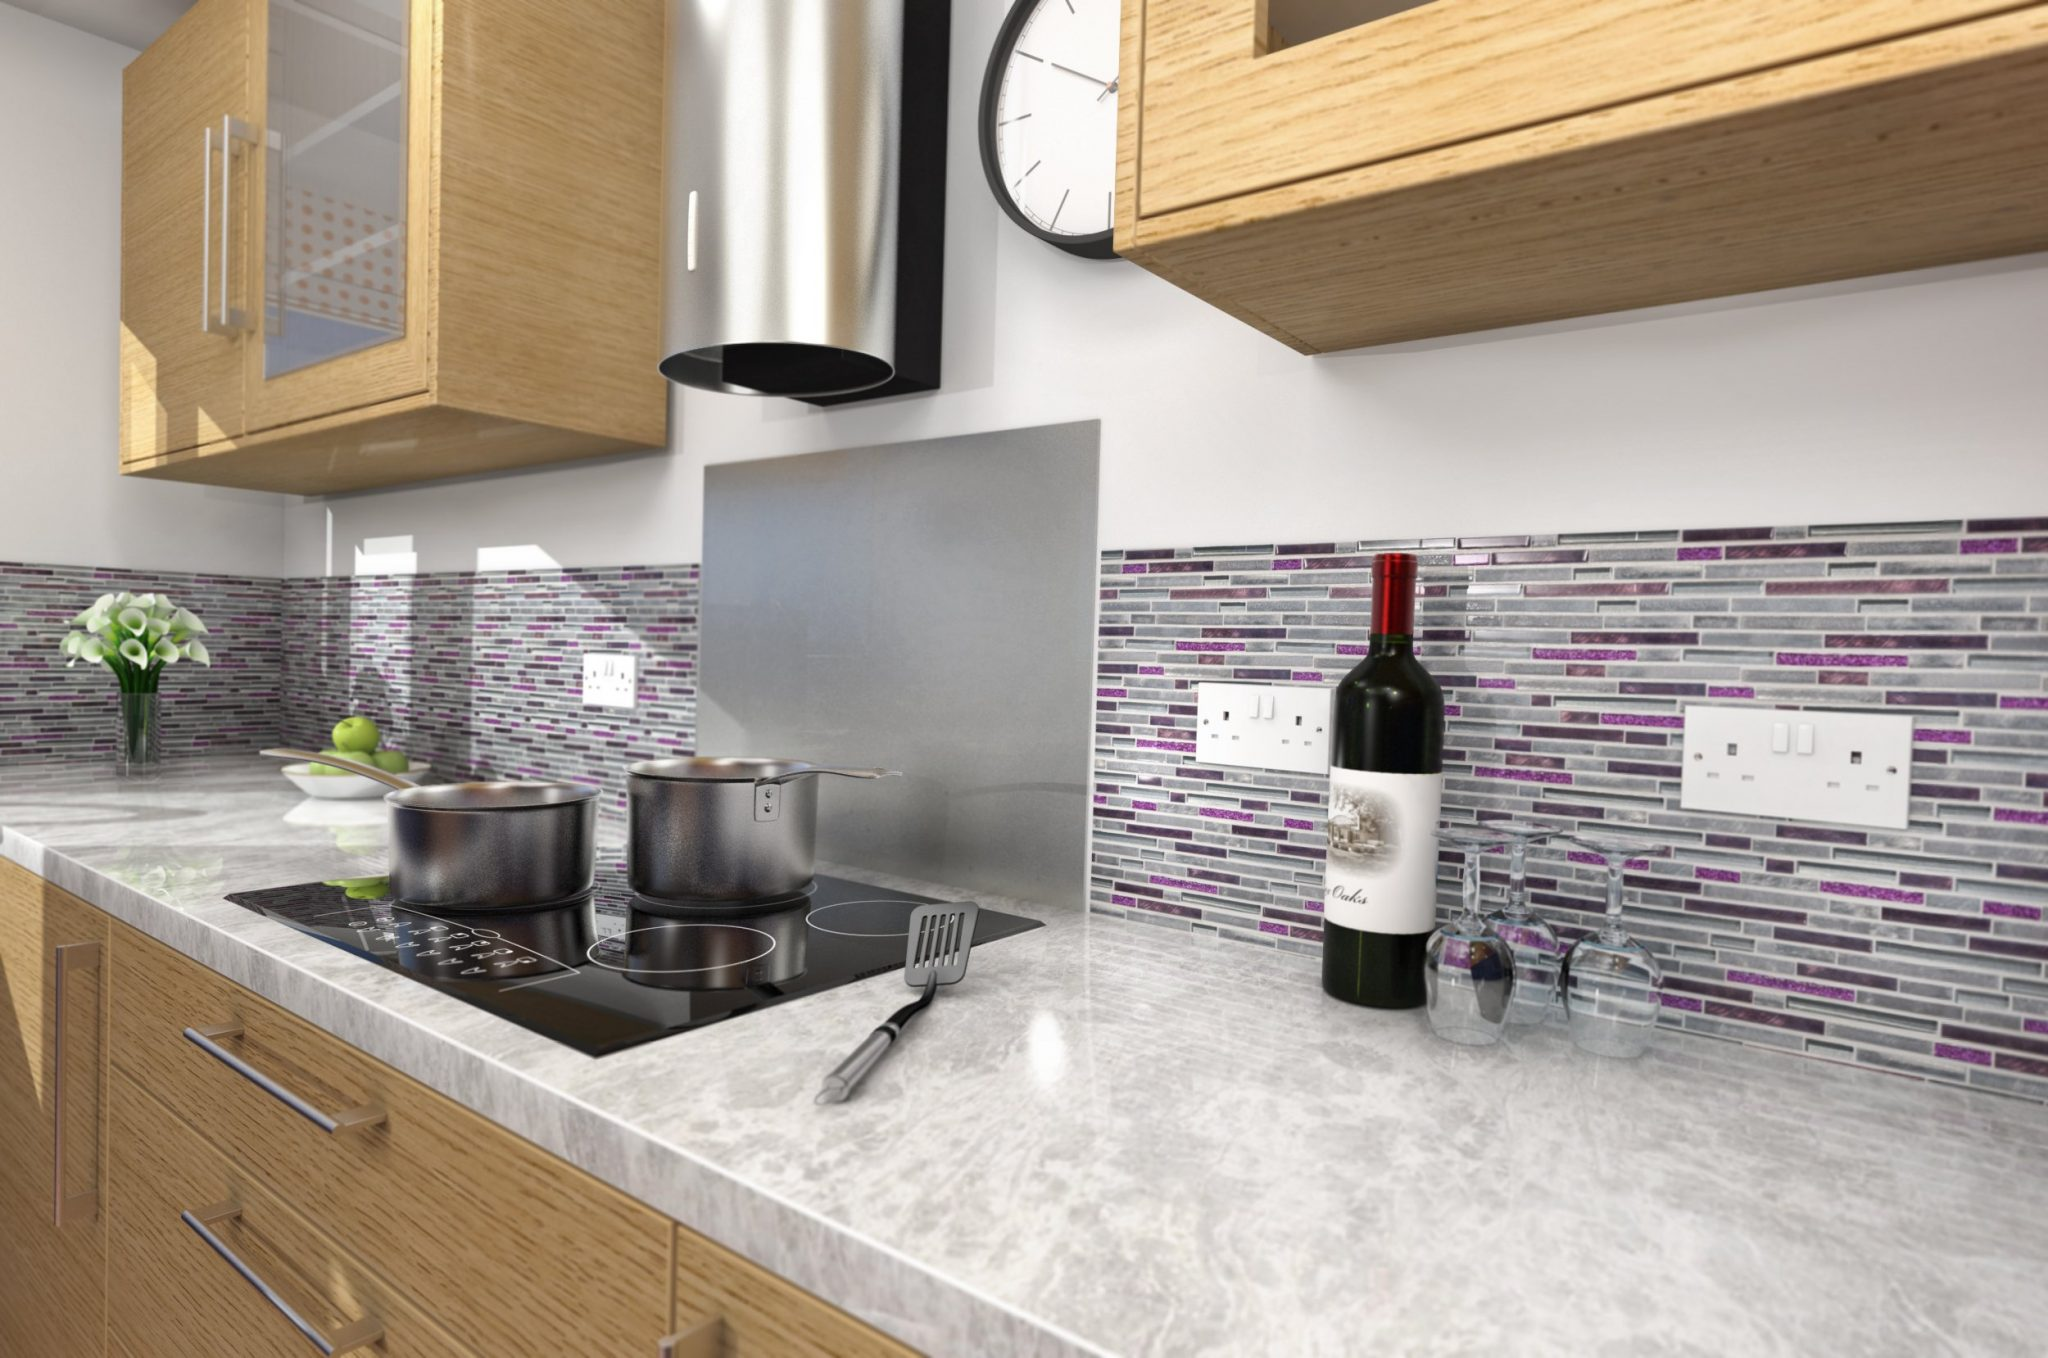 Kitchen Mosaic Tiles & Kitchen Mosaic Tiles | Mosaic Kitchen Tiles | Mosaic Village